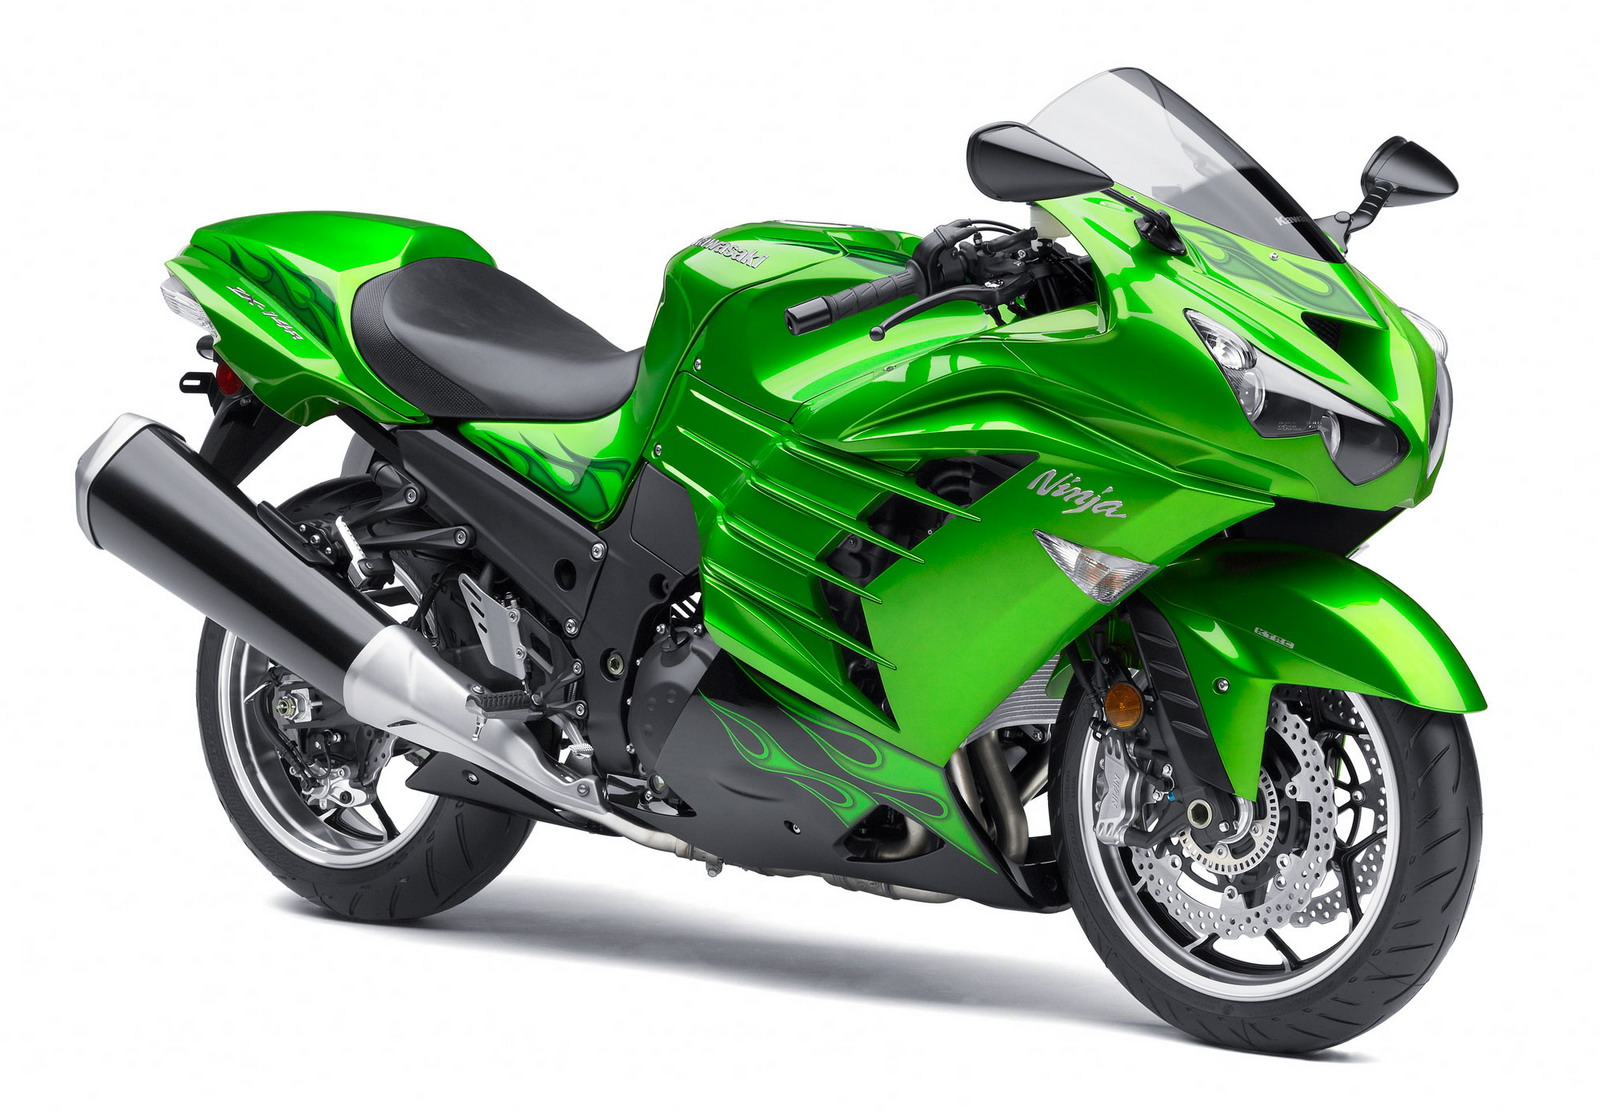 2012 Kawasaki Ninja ZX 14R Special Edition   MotorCycle Picture